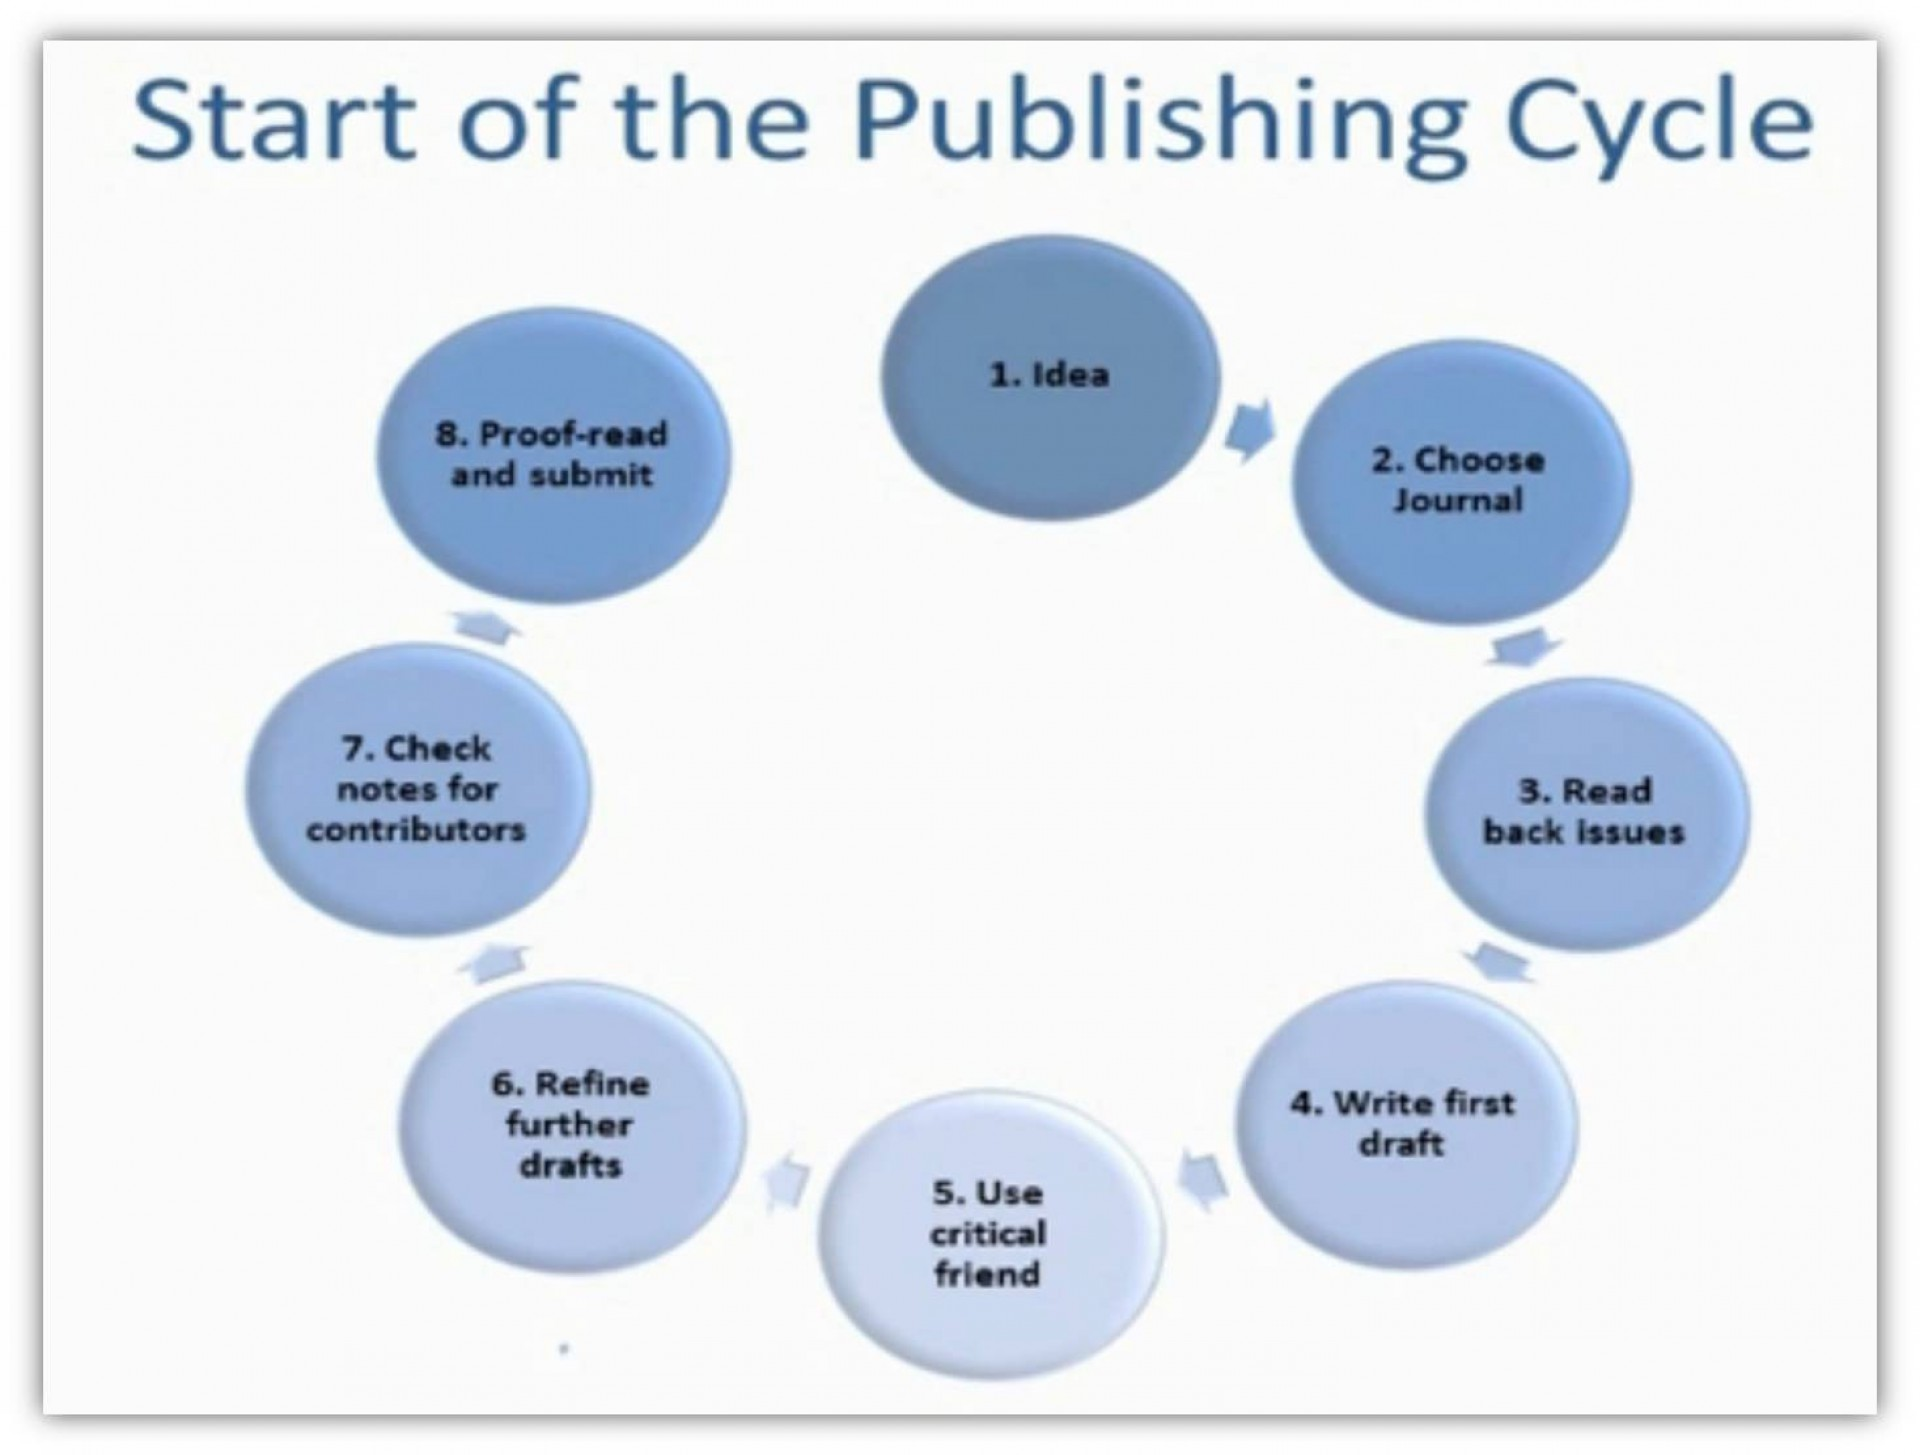 004 Journals To Publish Researchs Publishing Cycle Beautiful Research Papers International Paper In India List Of Best 1920